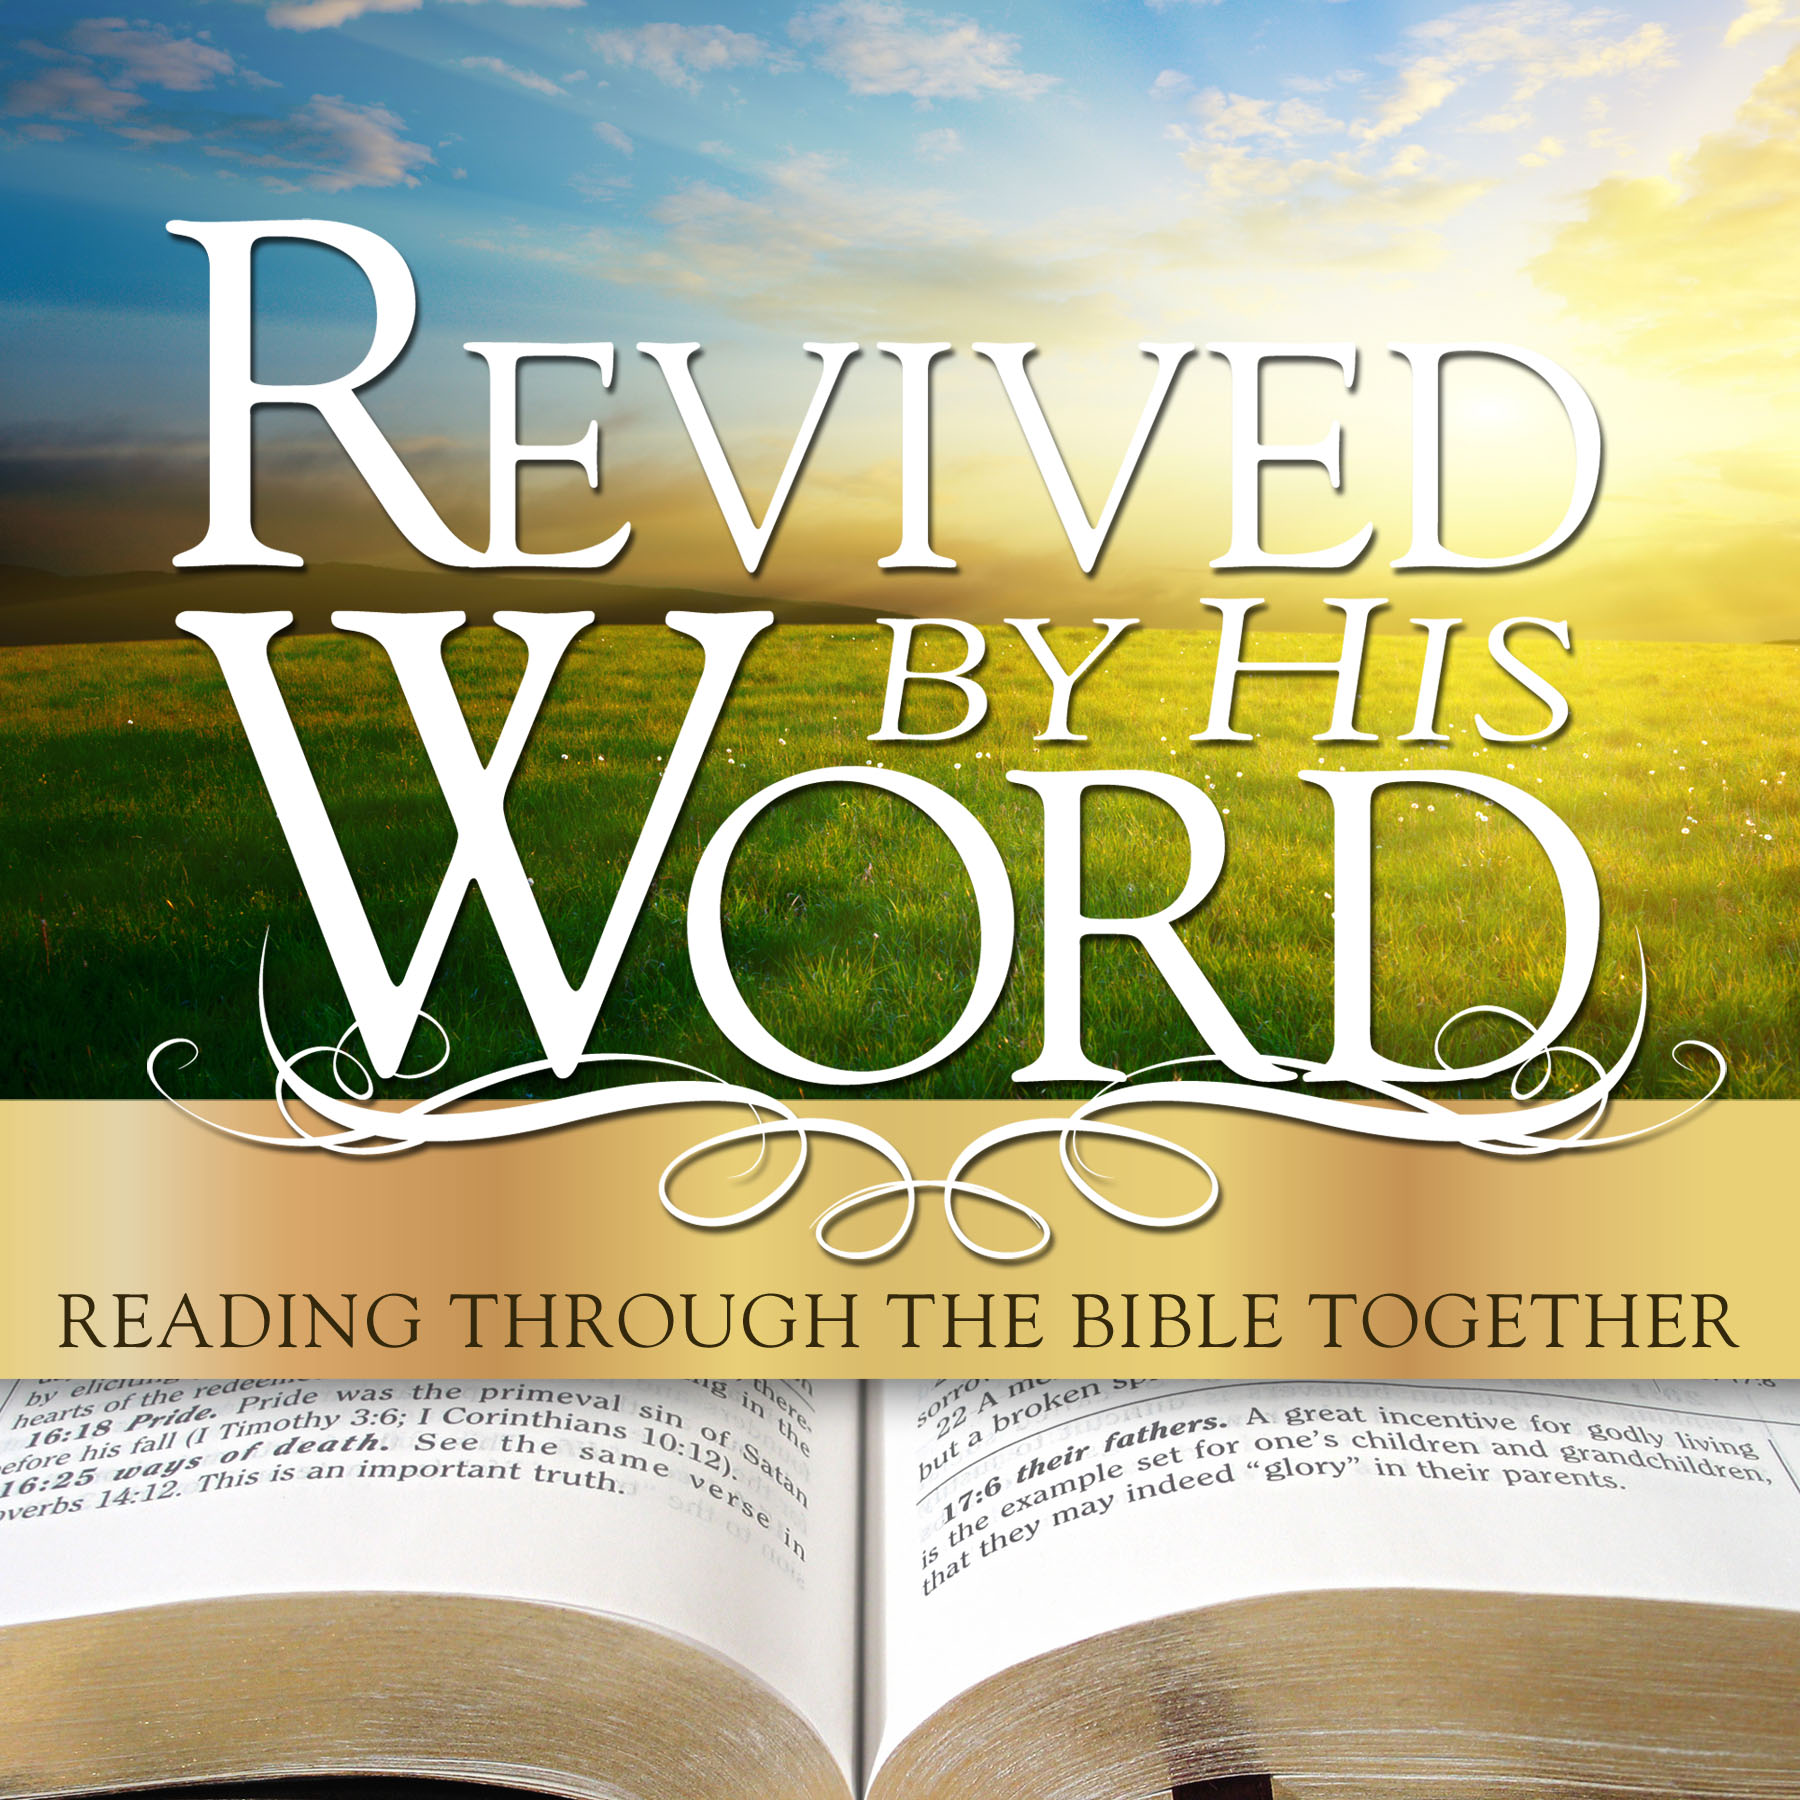 Revived by His Word